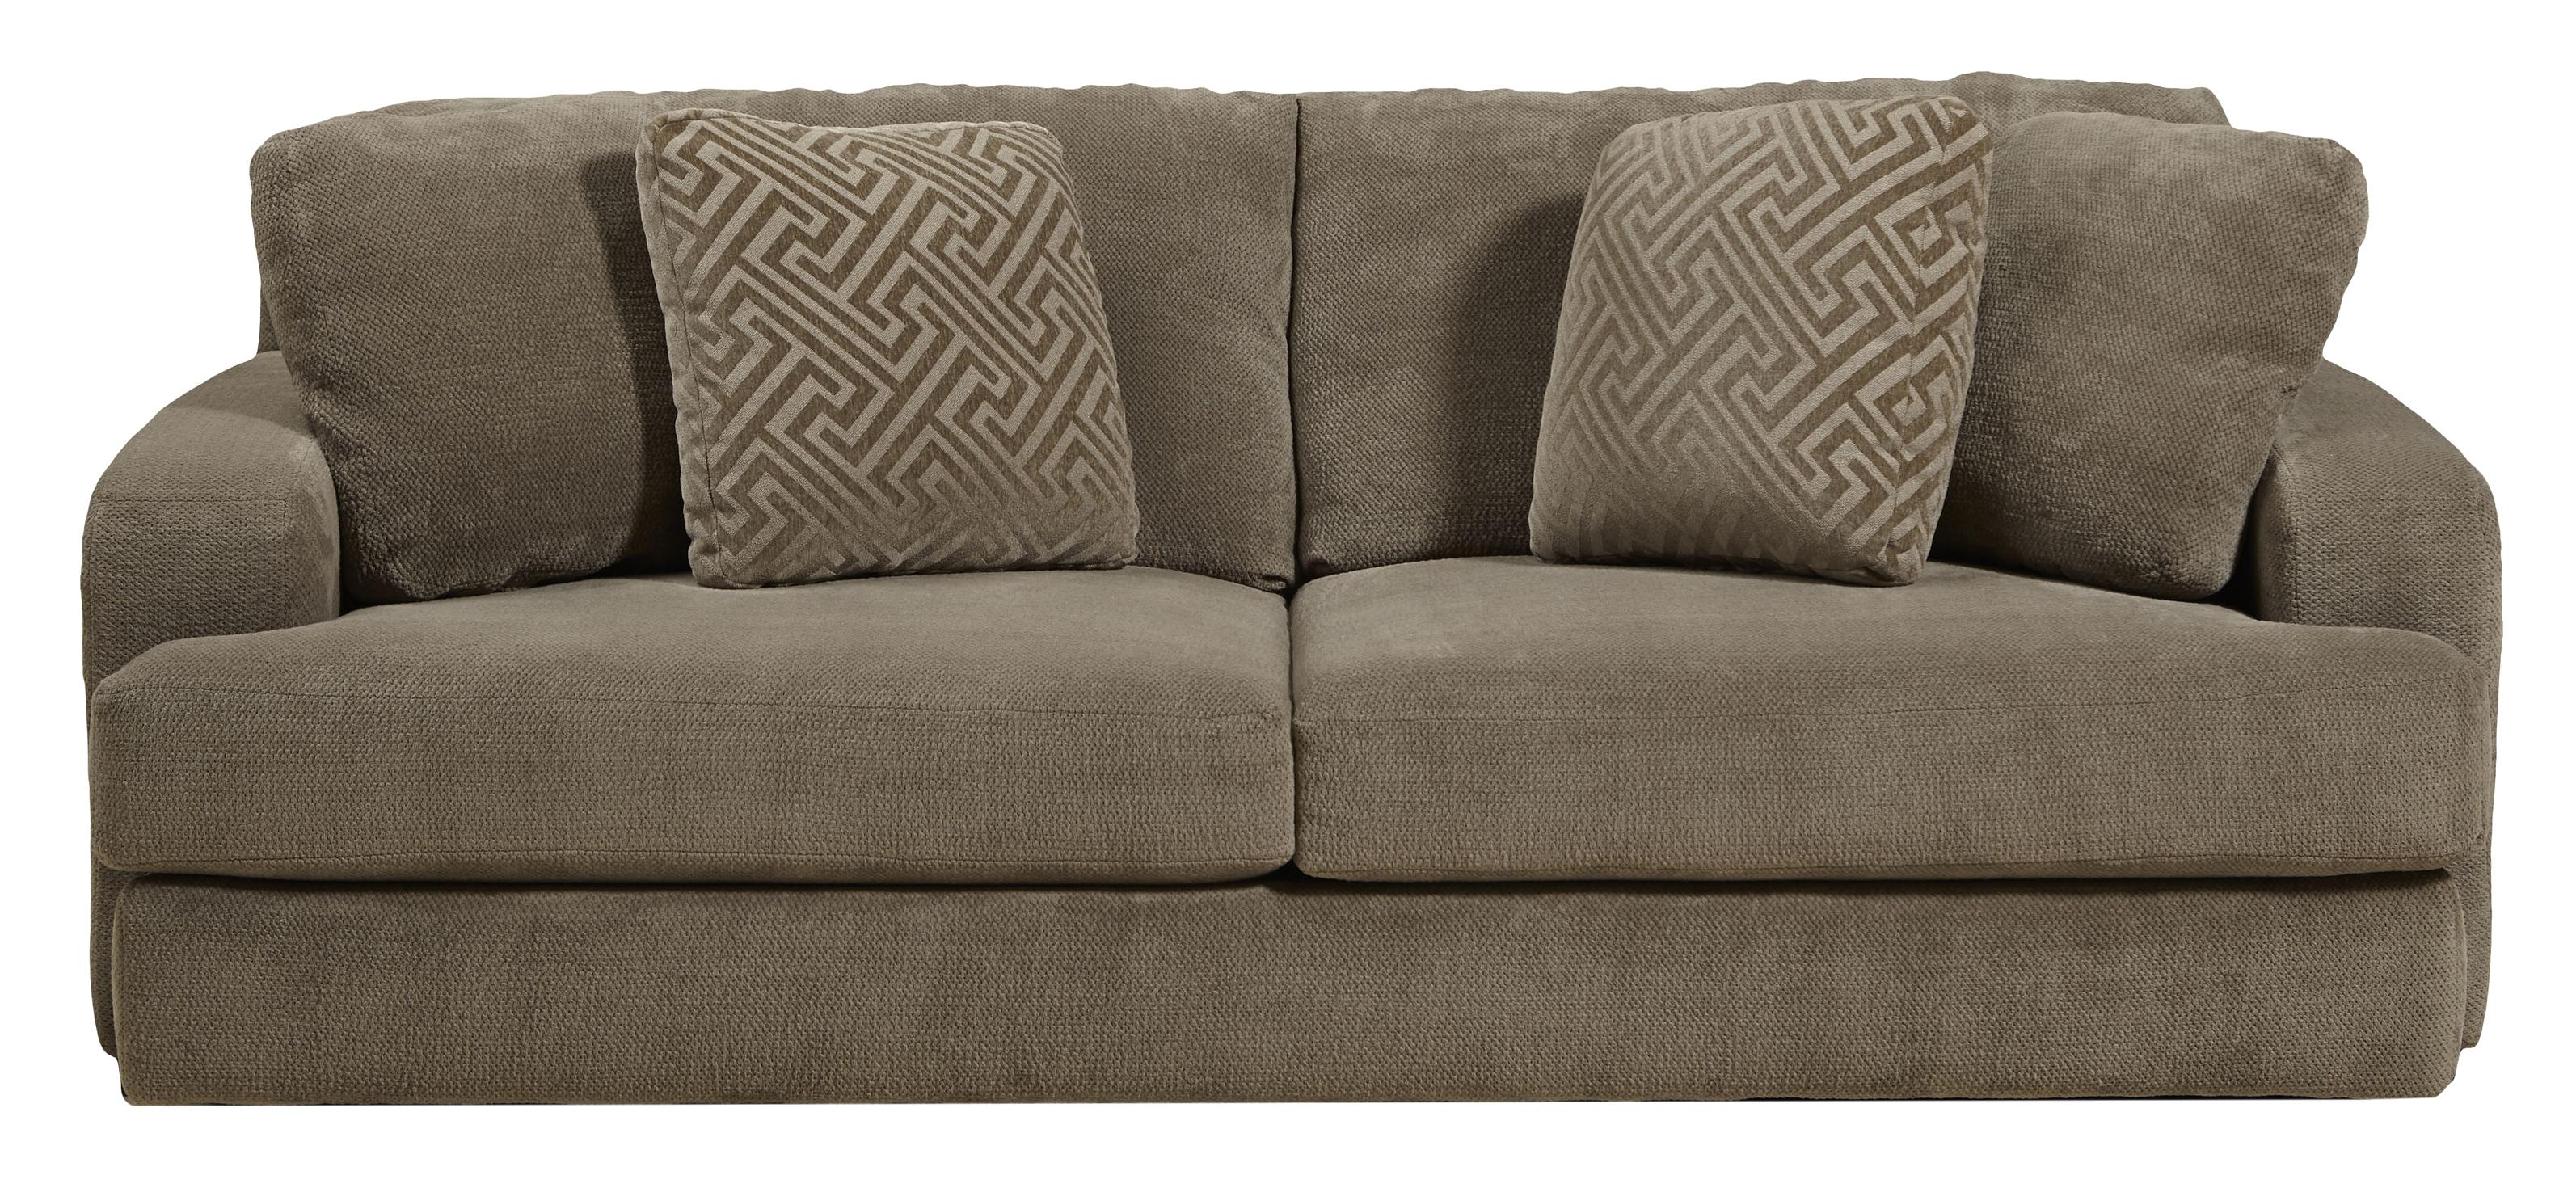 jackson furniture sofa online wholesale in chenille fabric by 4238 03